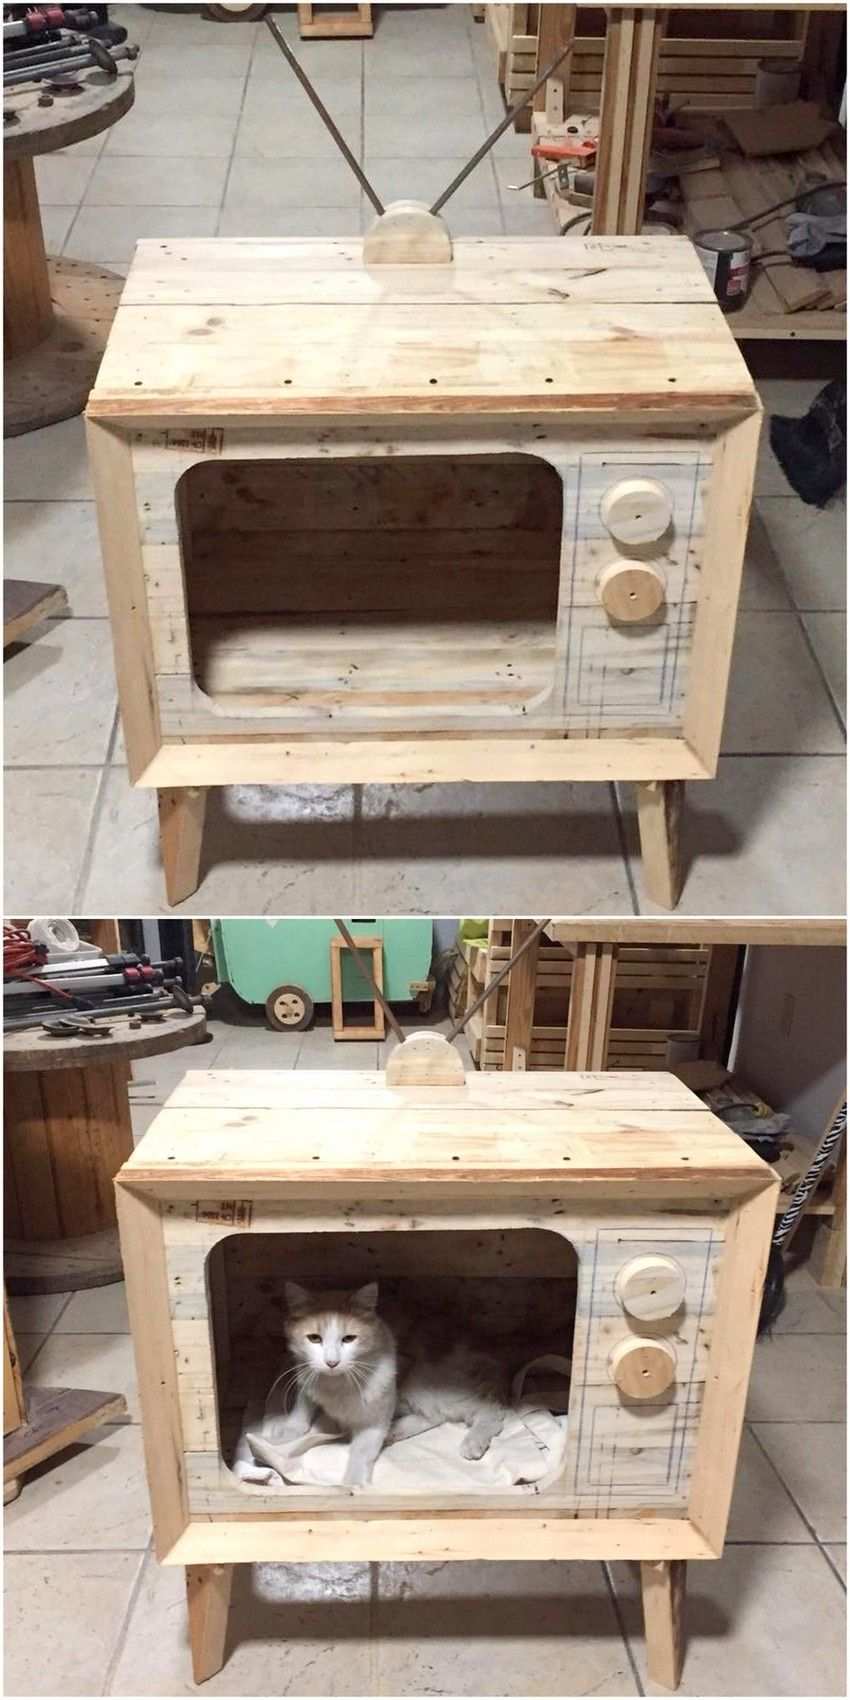 Catch out the shining appearance of recycled pallet wooden planks and design this elegant cat house idea shown below in image also repurposed diy ideas ku yuvas furniture rh pinterest